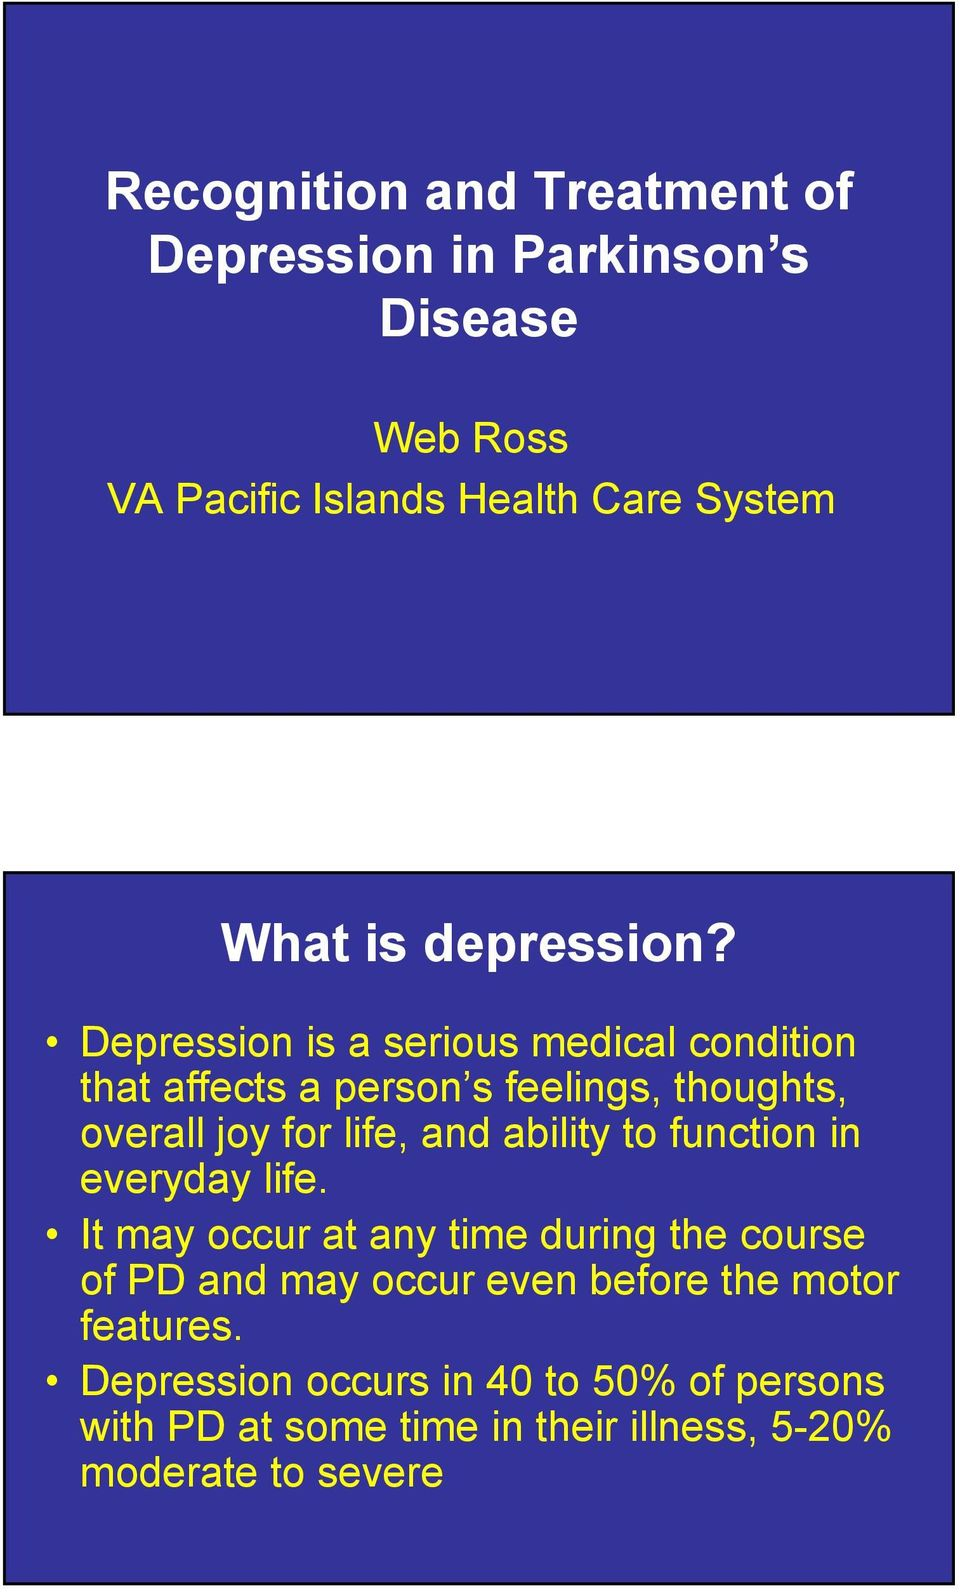 Depression is a serious medical condition that affects a person s feelings, thoughts, overall joy for life, and ability